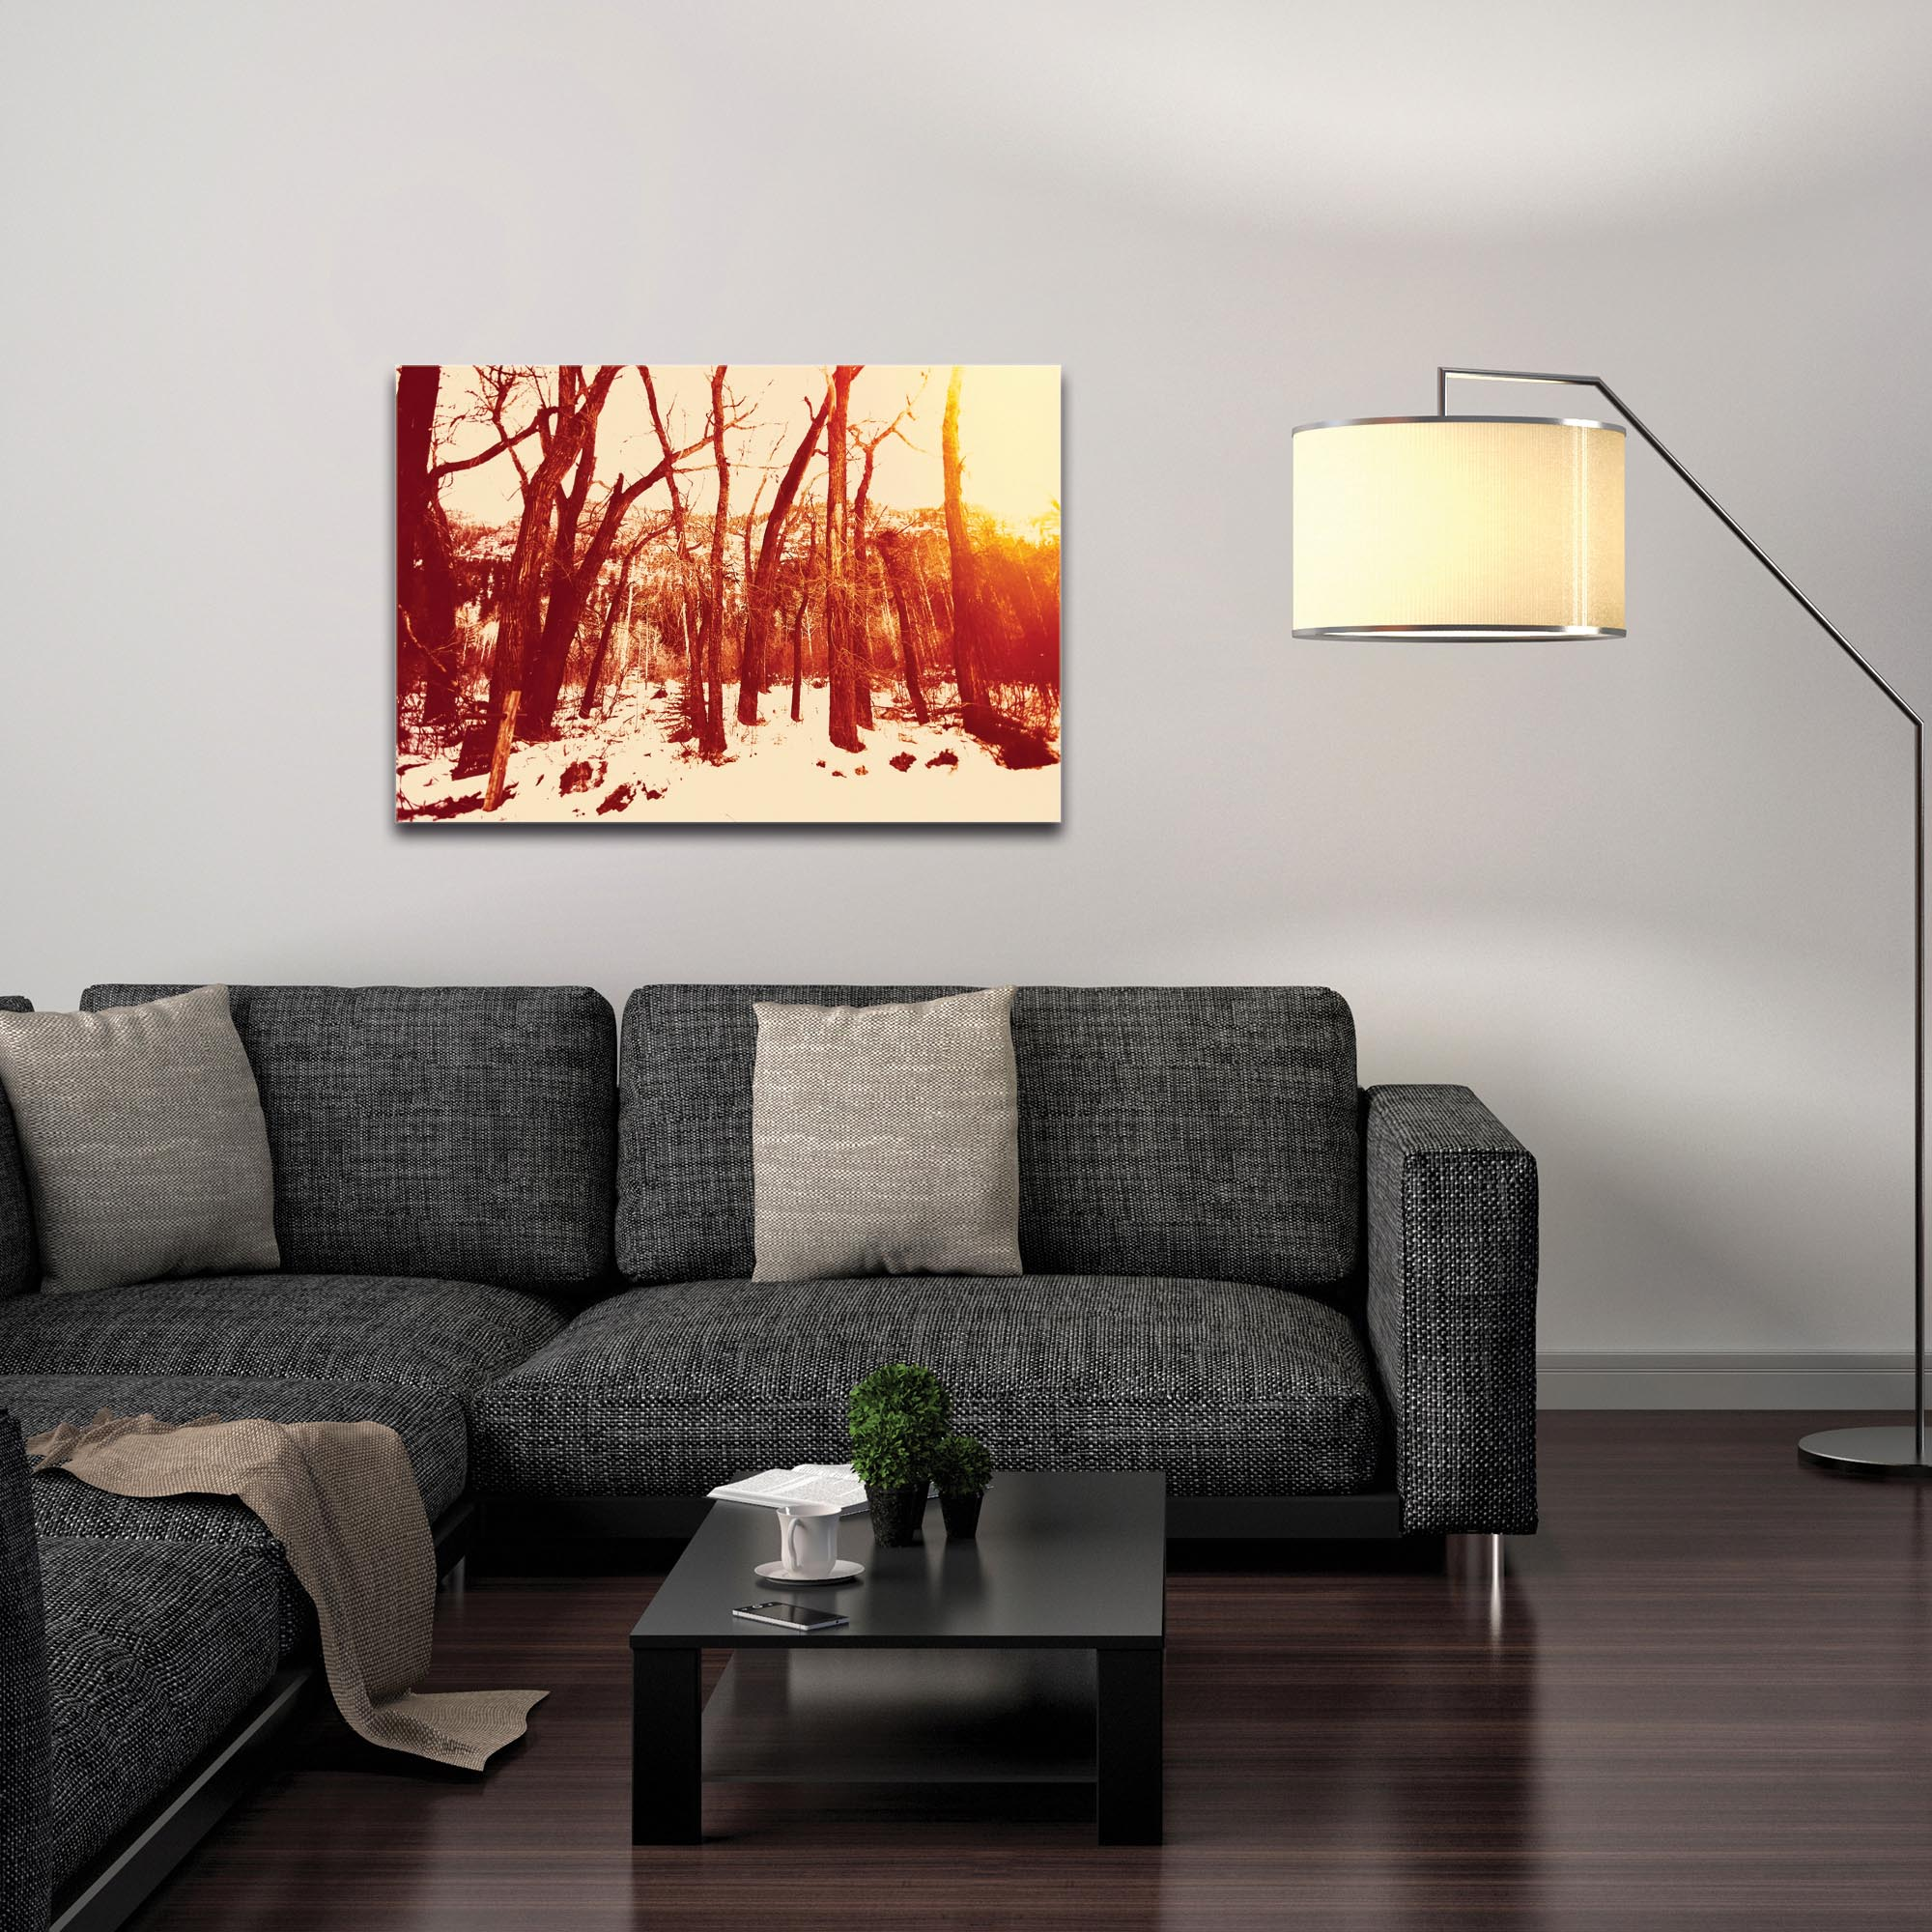 Landscape Photography 'Sepia Snowfall' - Winter Trees Art on Metal or Plexiglass - Image 3